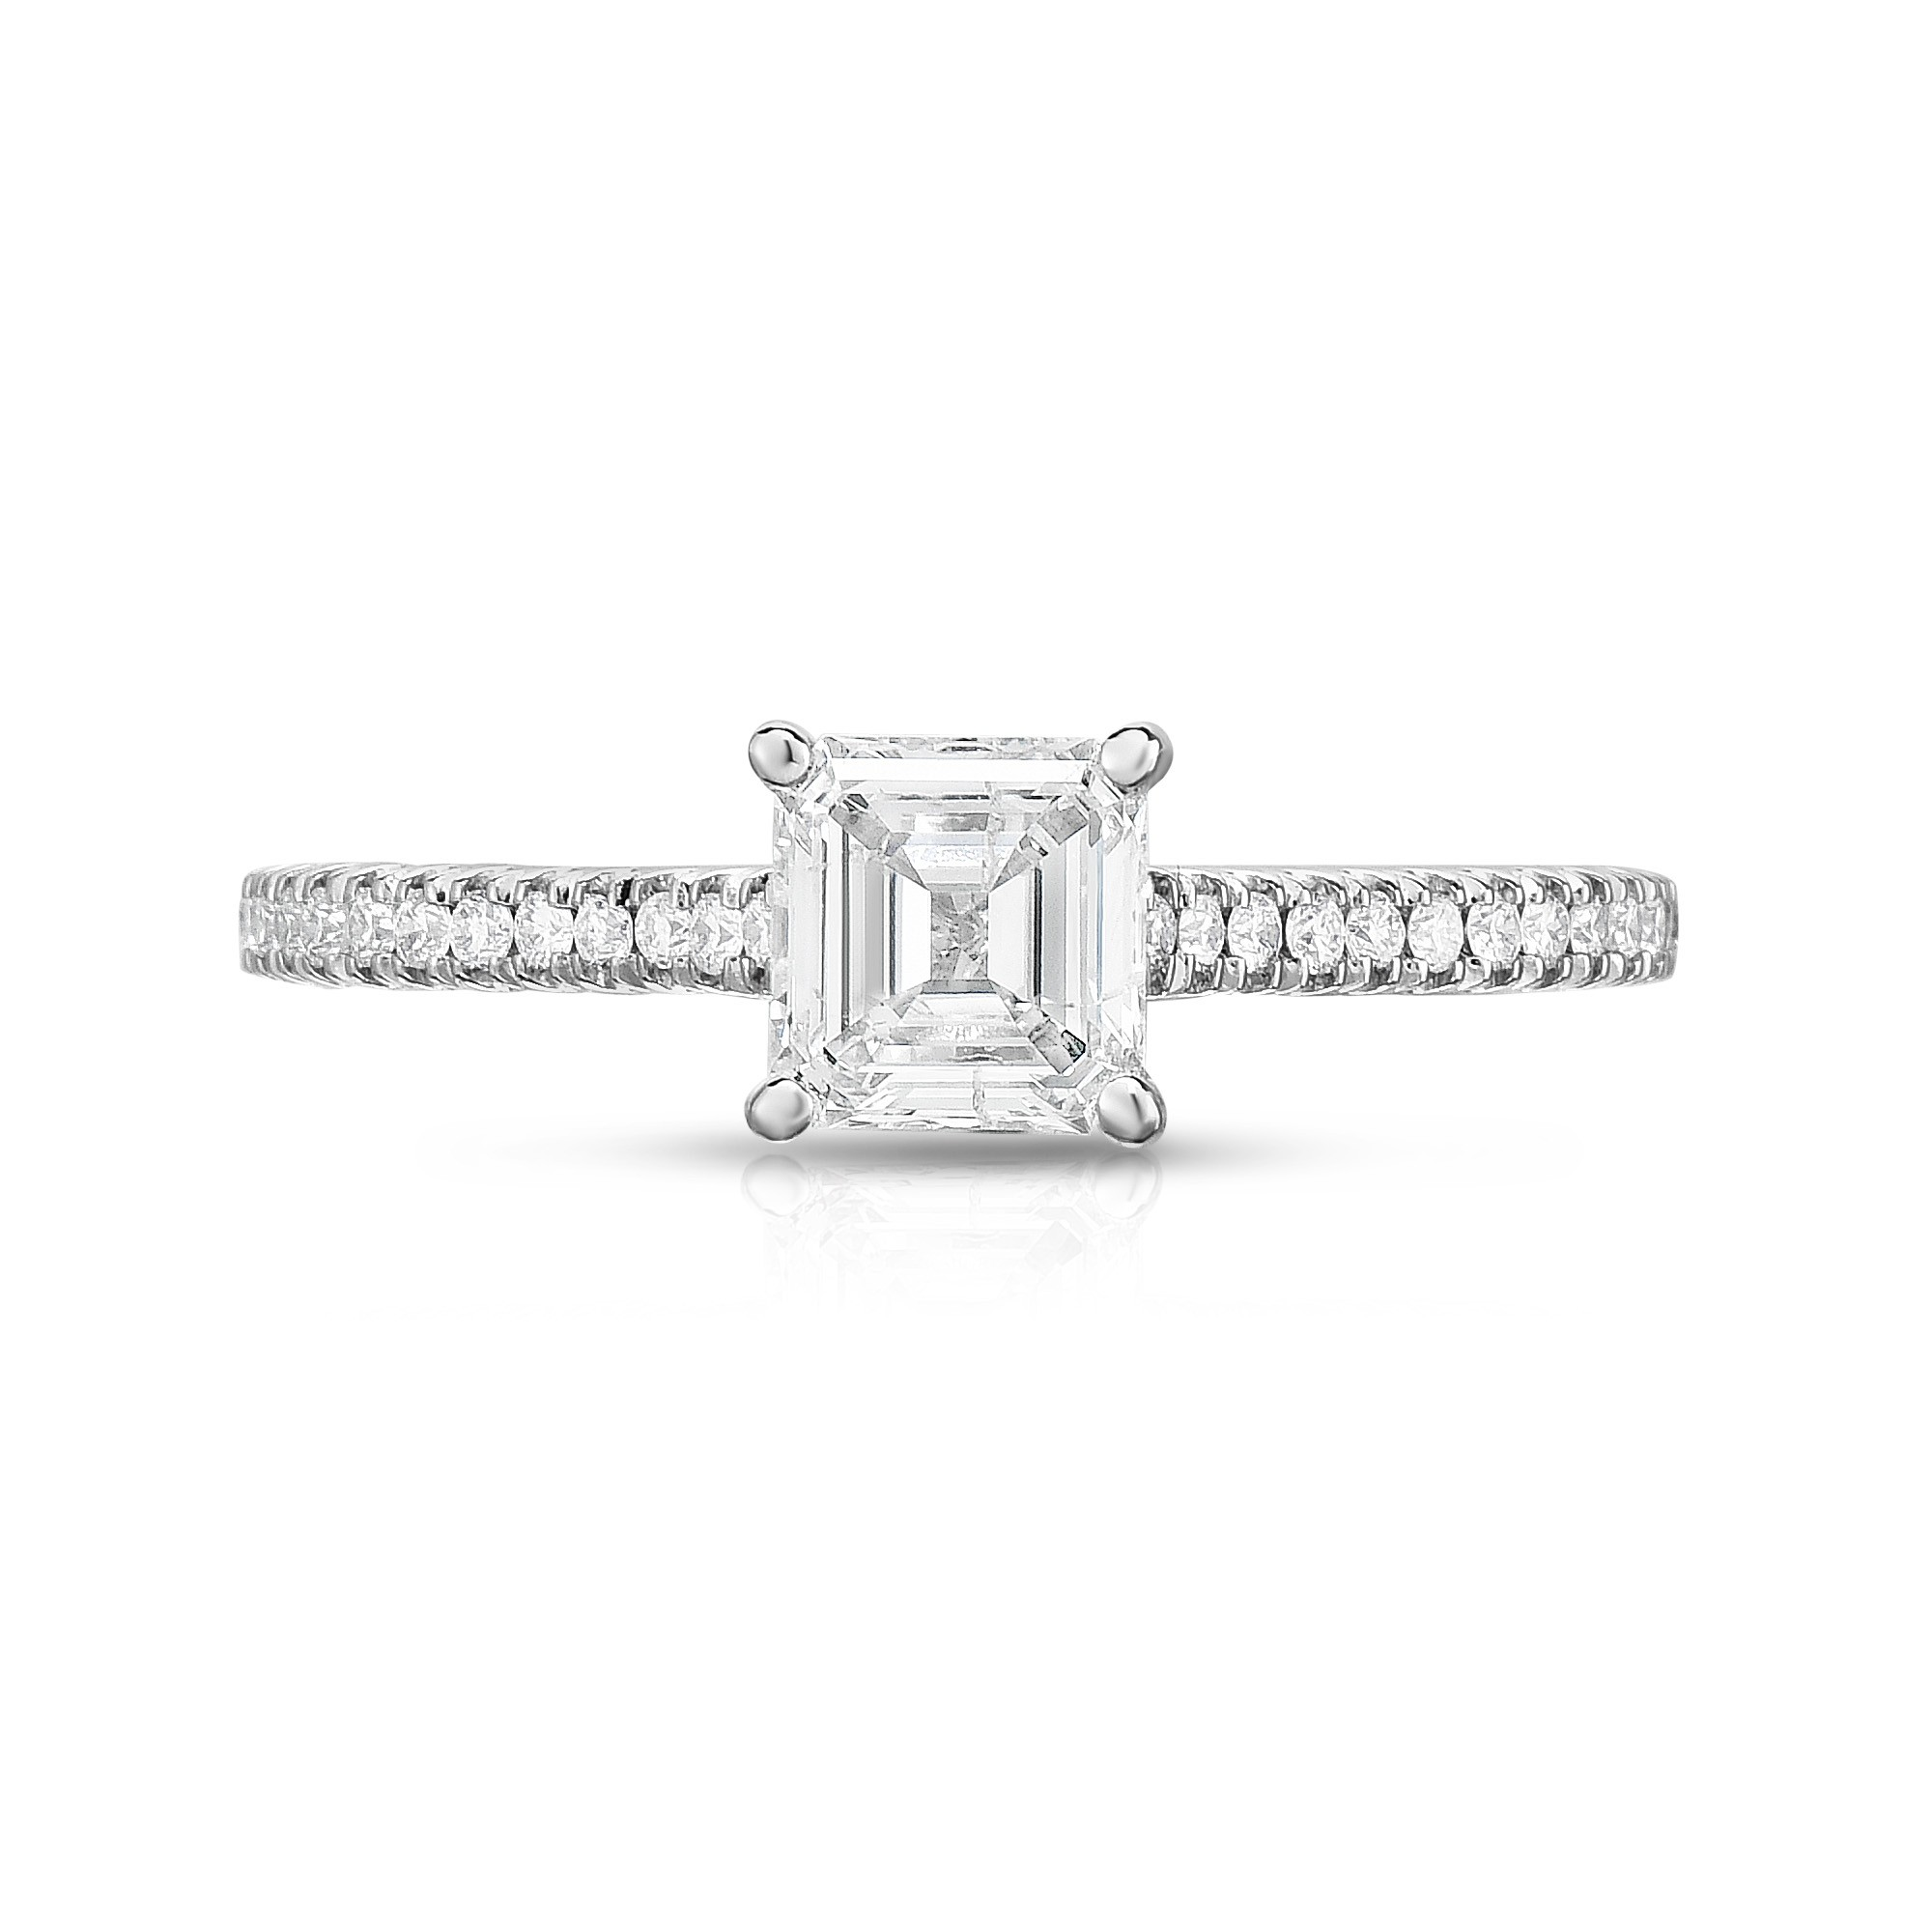 shoulders x into pave rings with cut in platinum asscher diamond setting jewellery set round brilliants e colour clarity a cubed and emerald gallery engagement